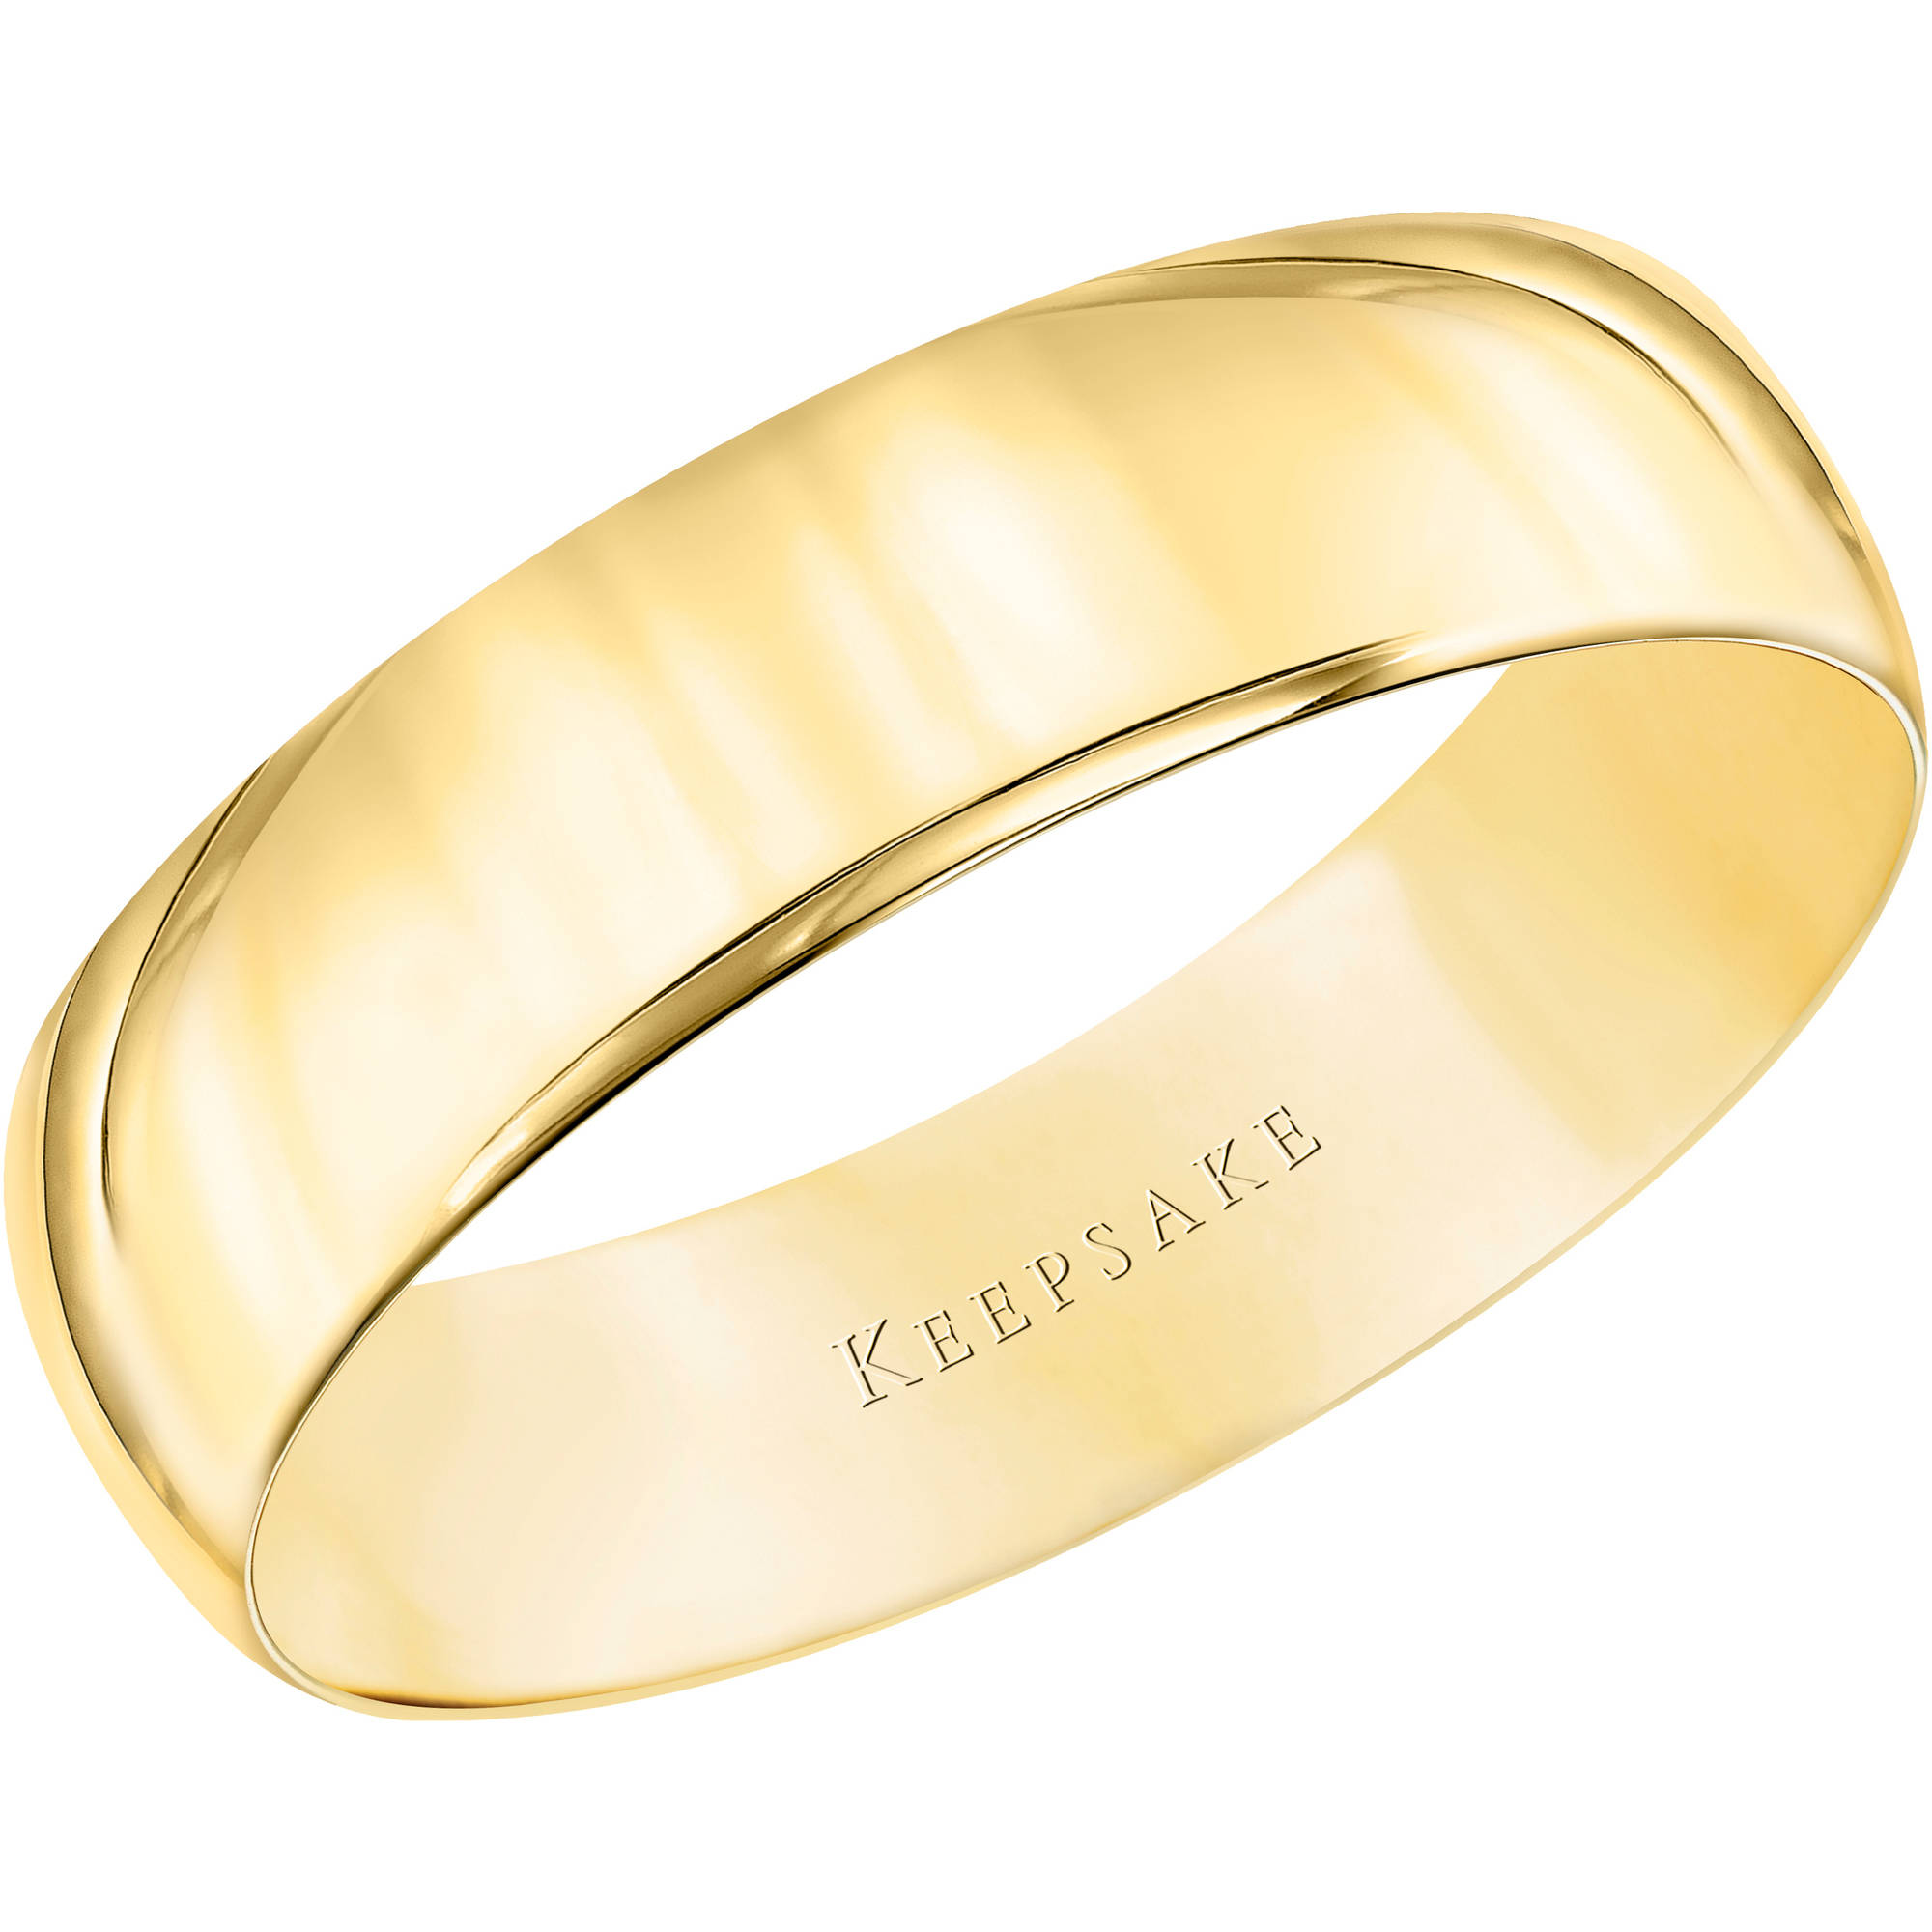 keepsake 10kt yellow gold comfort fit wedding band 55mm walmartcom - Wedding Rings From Walmart